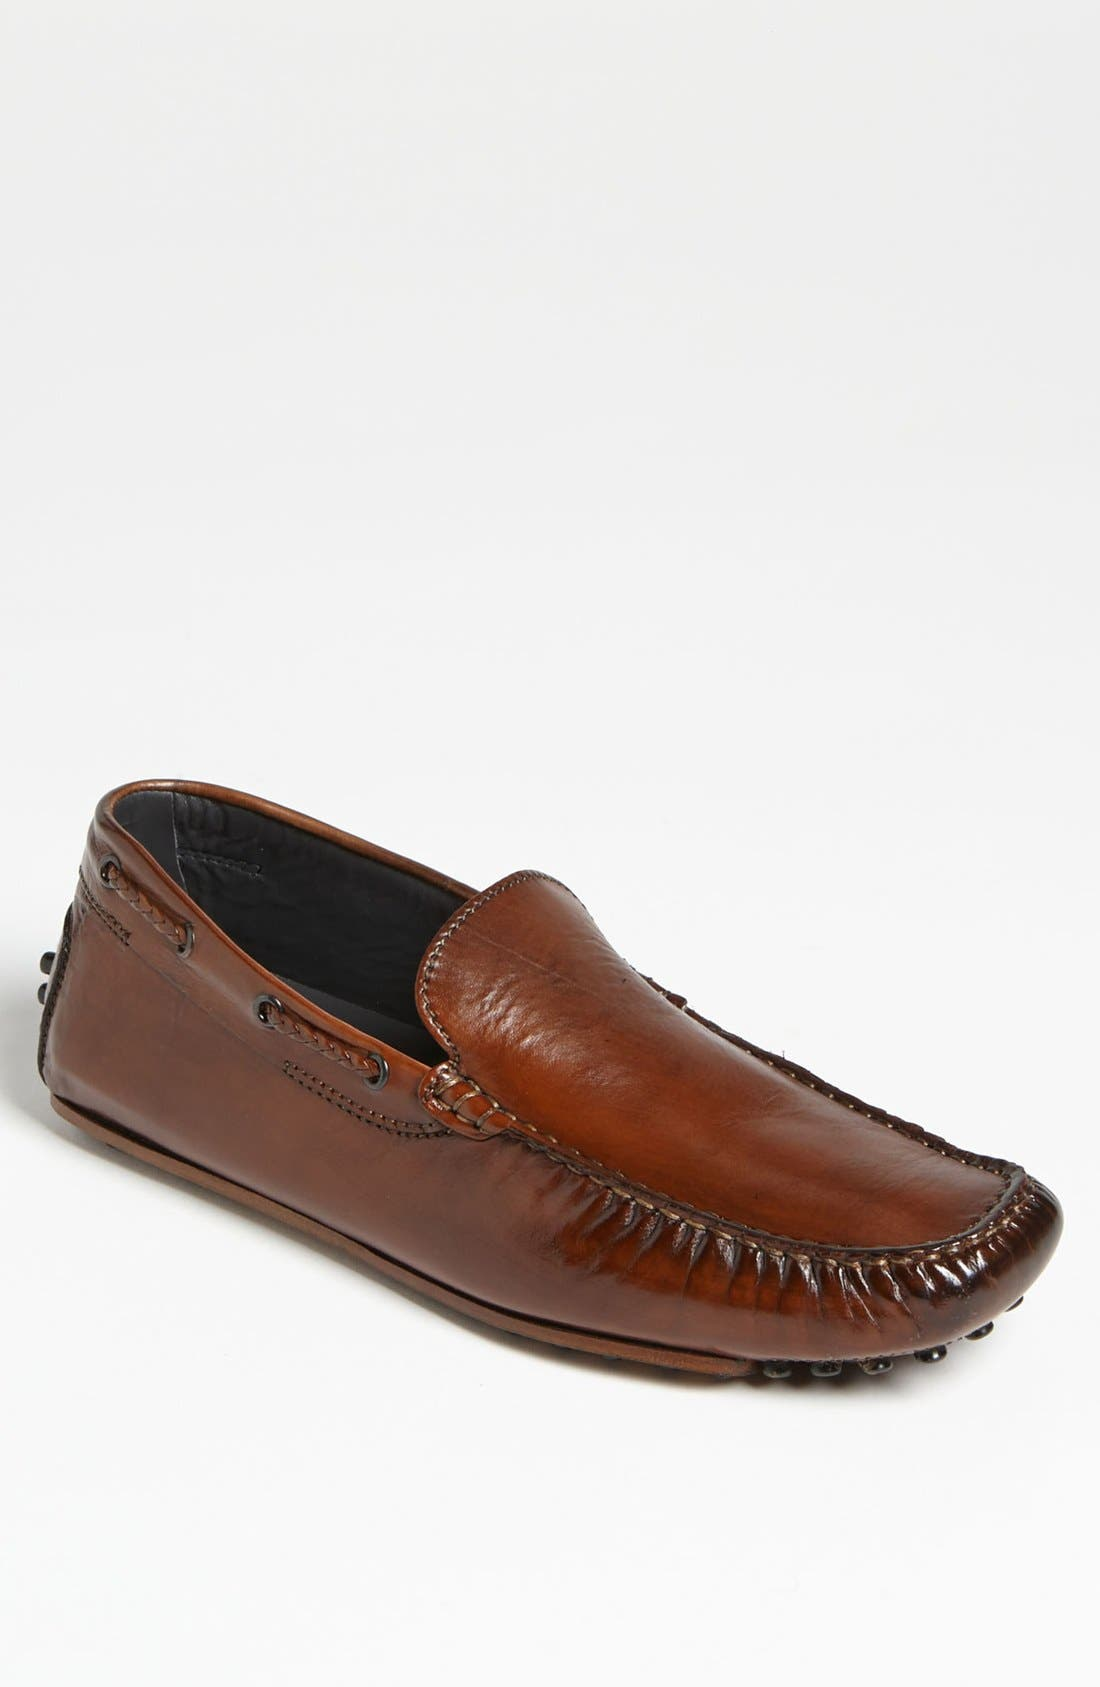 Main Image - To Boot New York 'Trumball' Driving Shoe